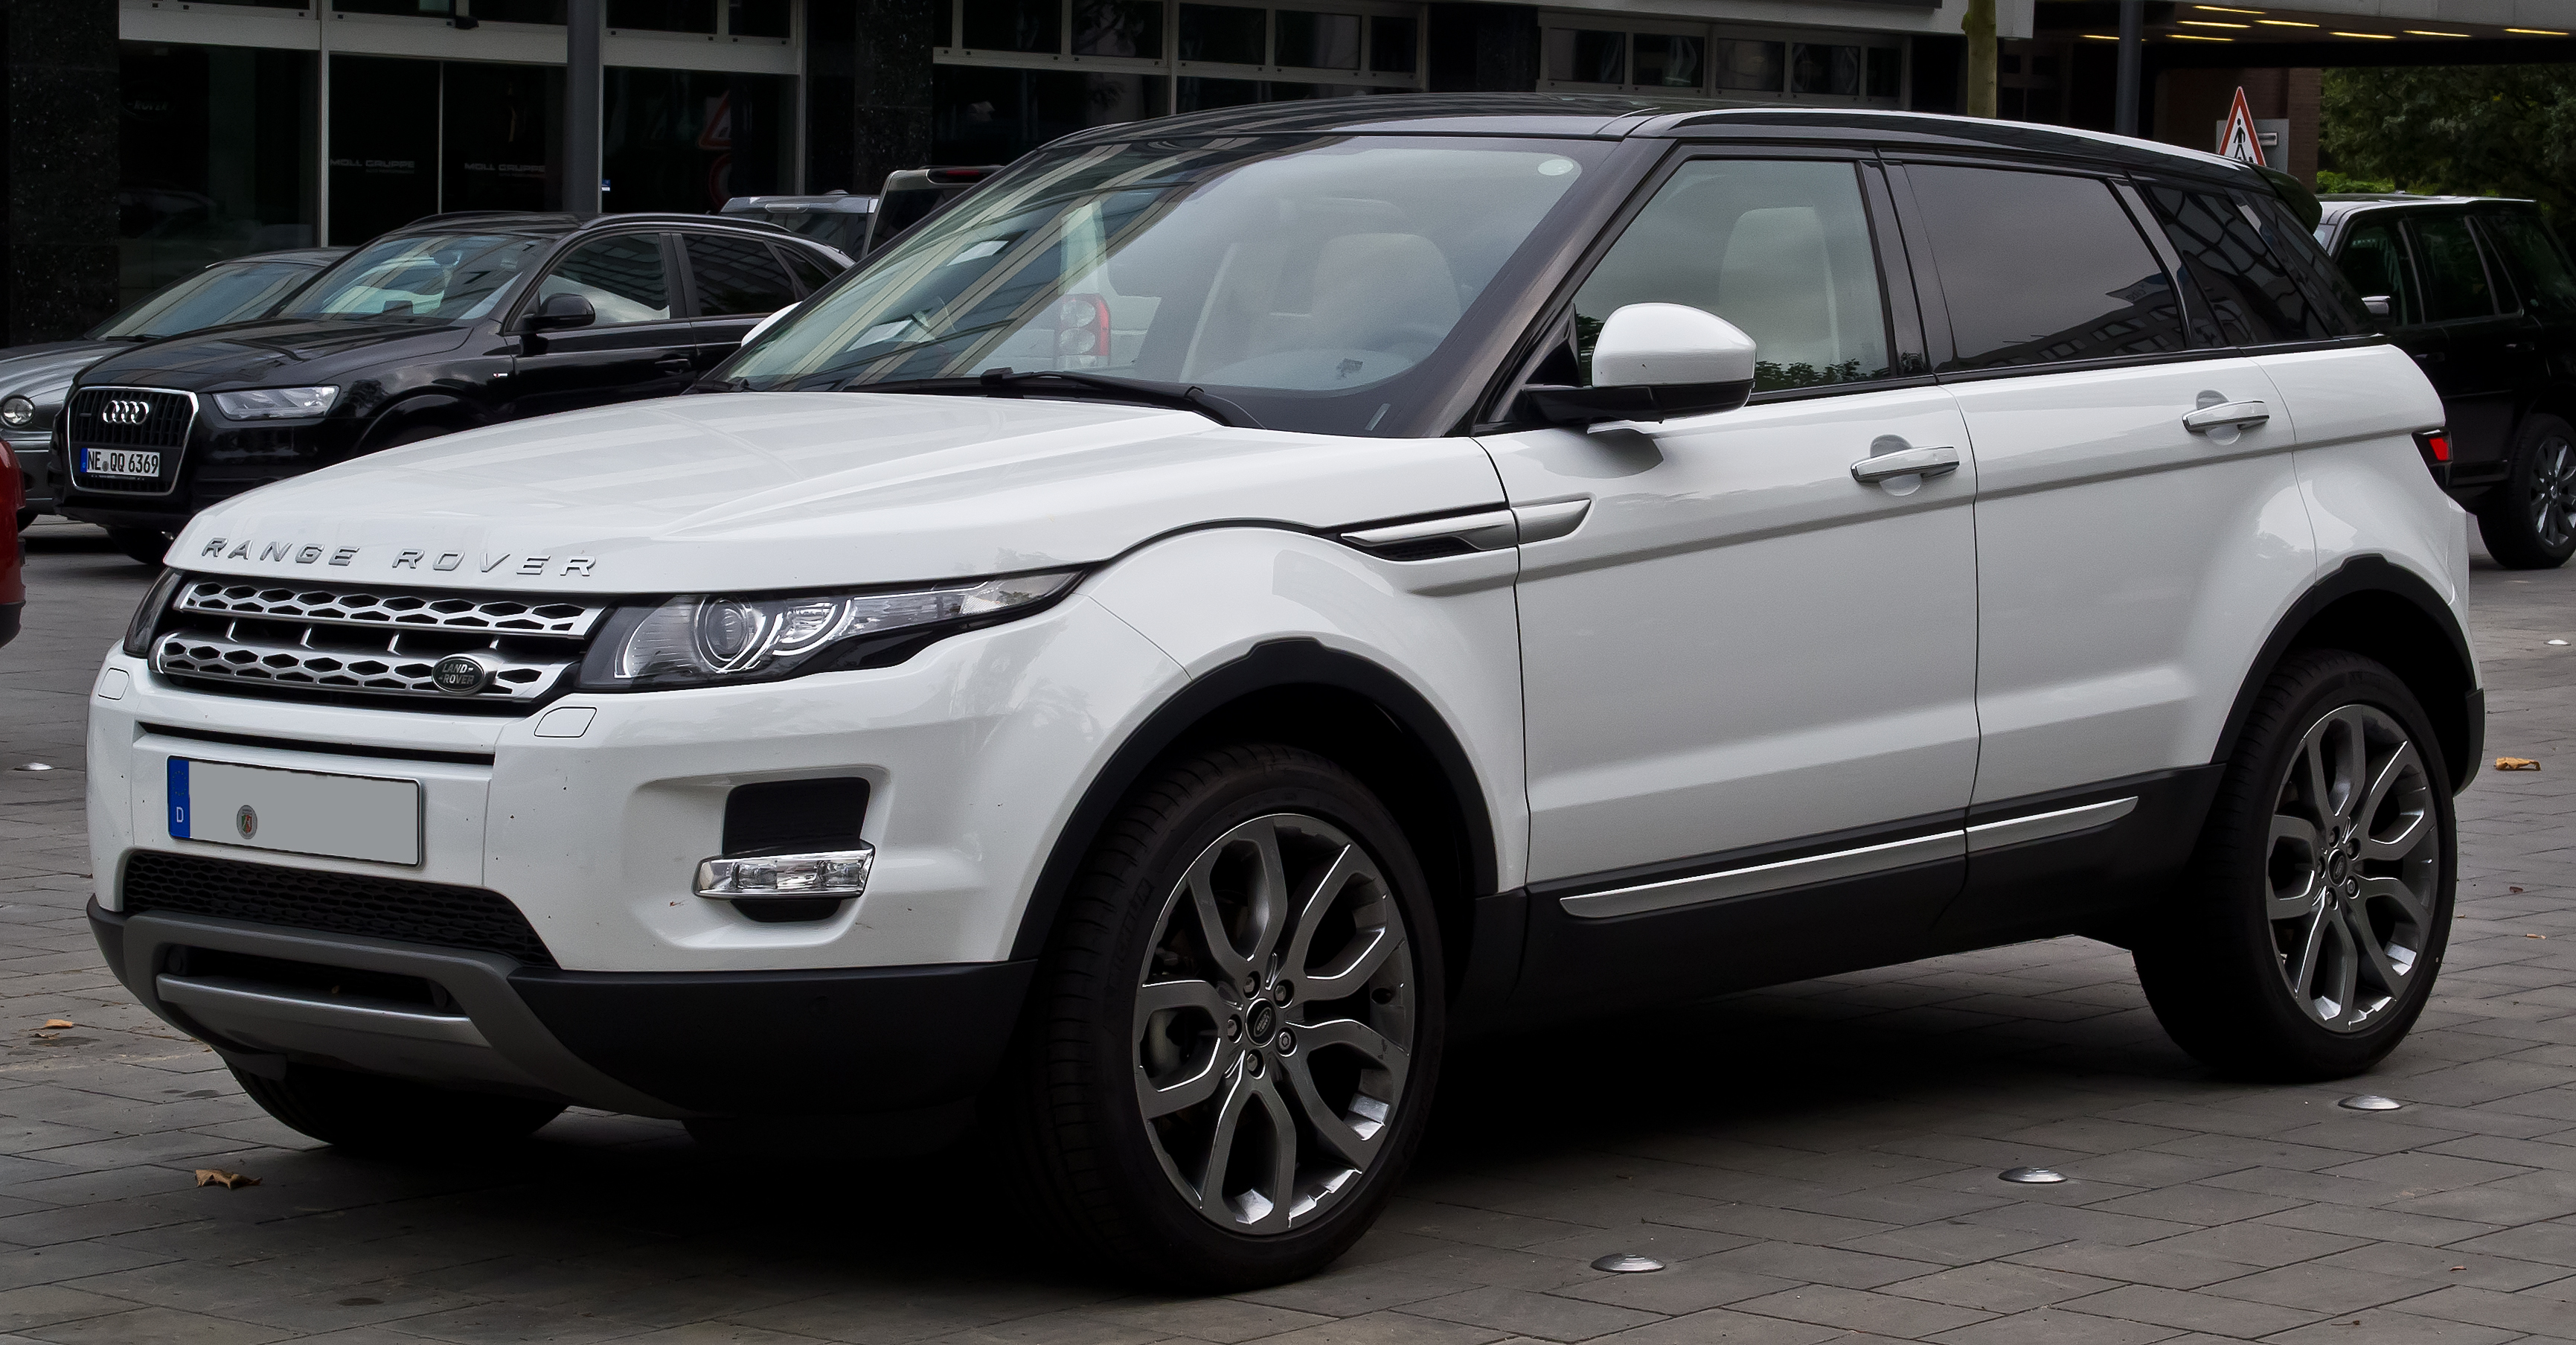 range rover evoque wikipedia the free encyclopedia autos. Black Bedroom Furniture Sets. Home Design Ideas